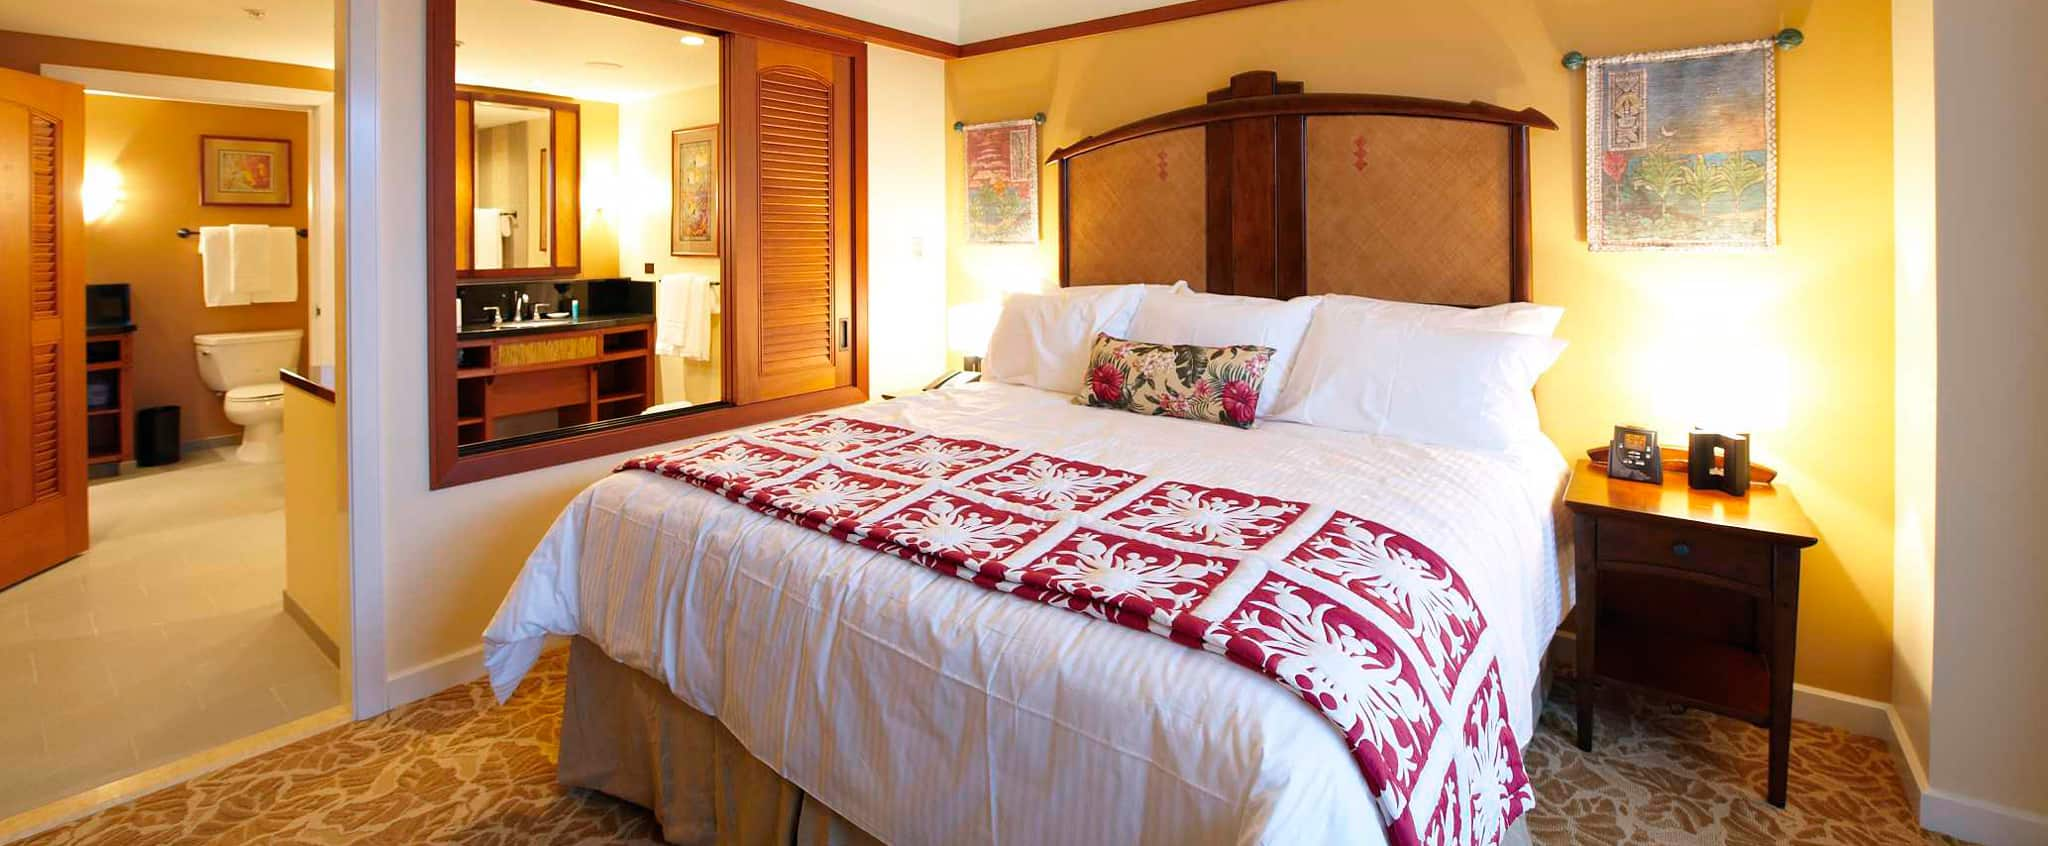 the 1 bedroom villa features crisp linens warm wood accents and a large bathroom - One Bedroom